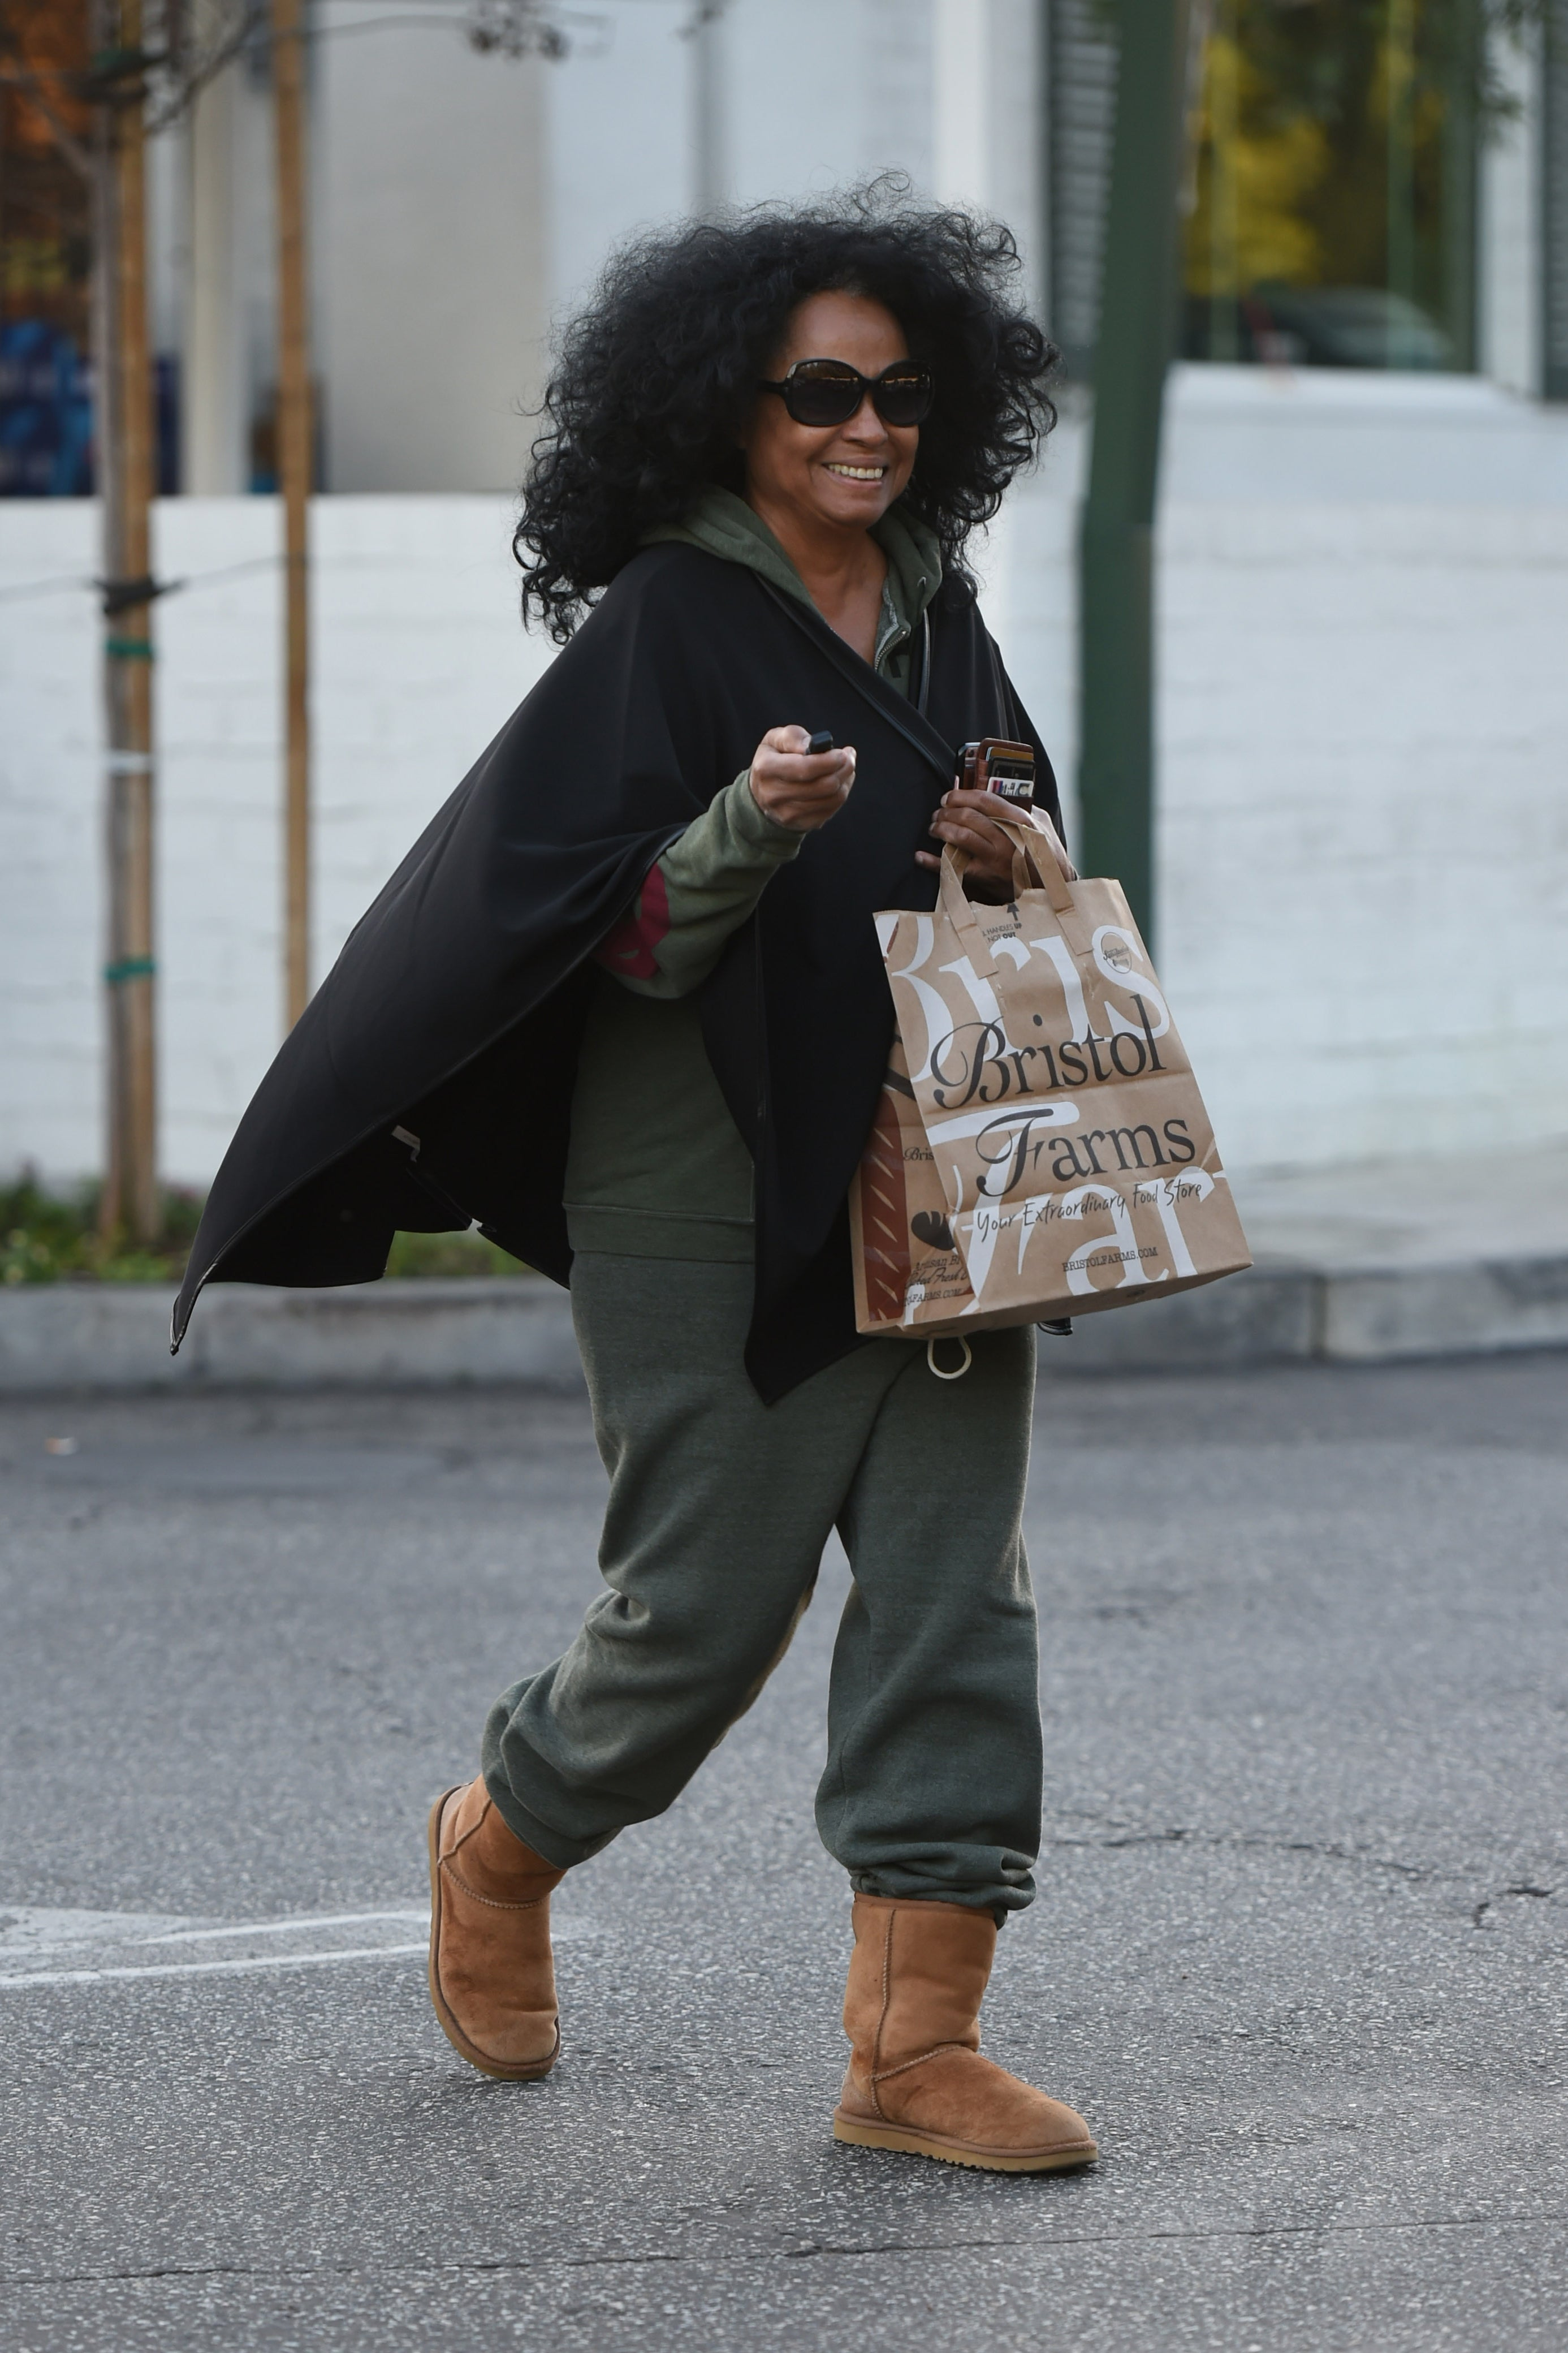 uggs are in style again thanks to